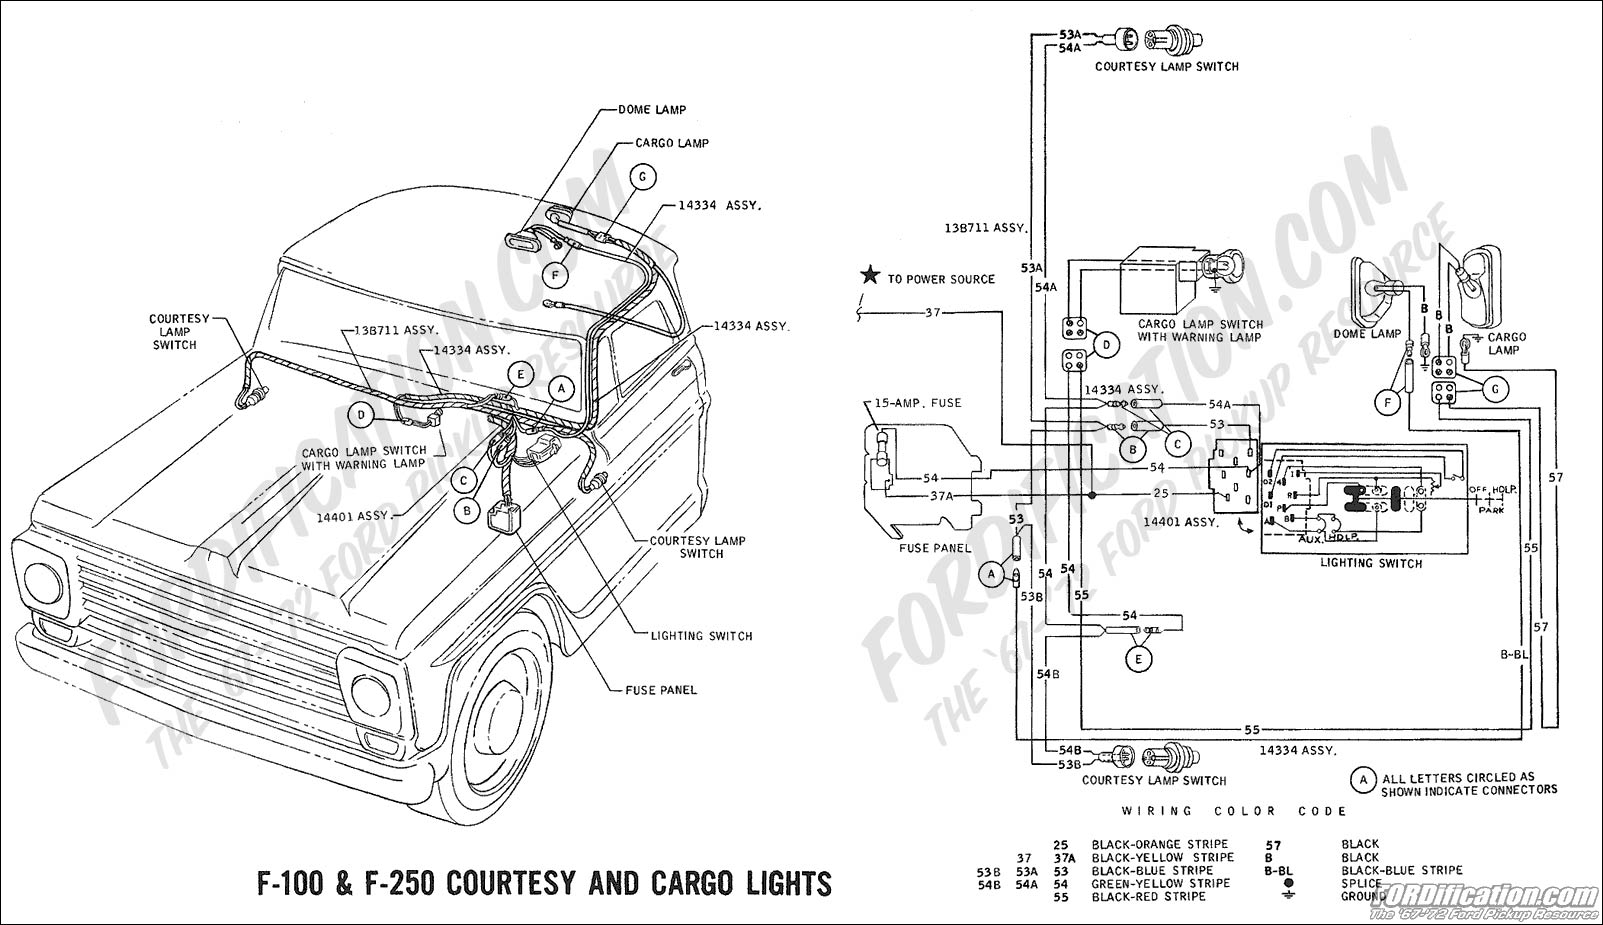 1969 F-100, F-250 rear lights (Model 99) - 01